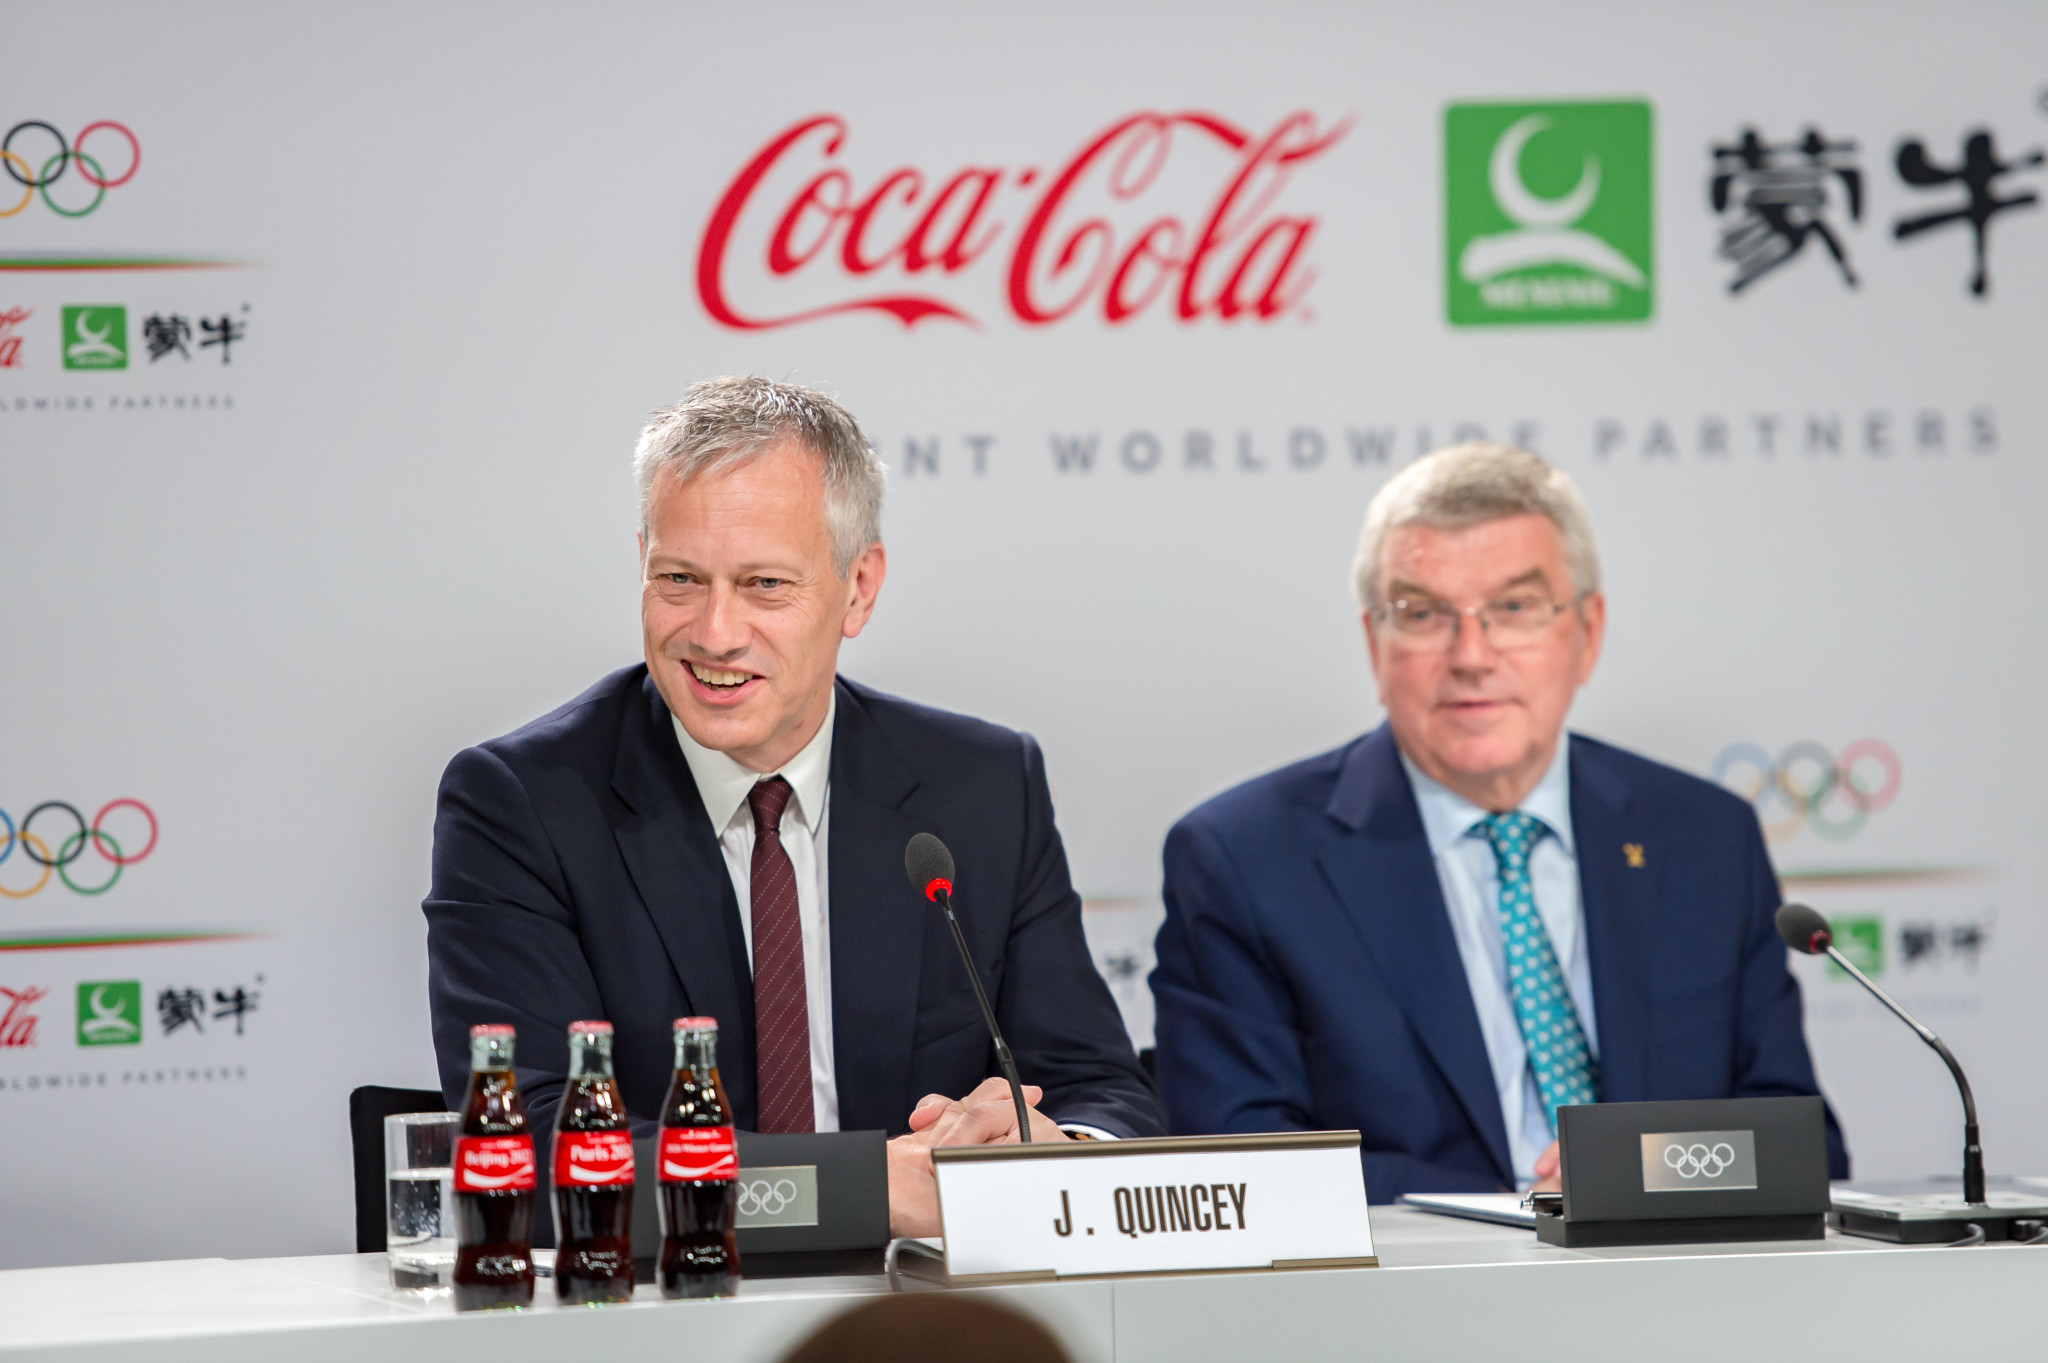 Coca-Cola chairman James Quincey, pictured with IOC President Thomas Bach ©Getty Images